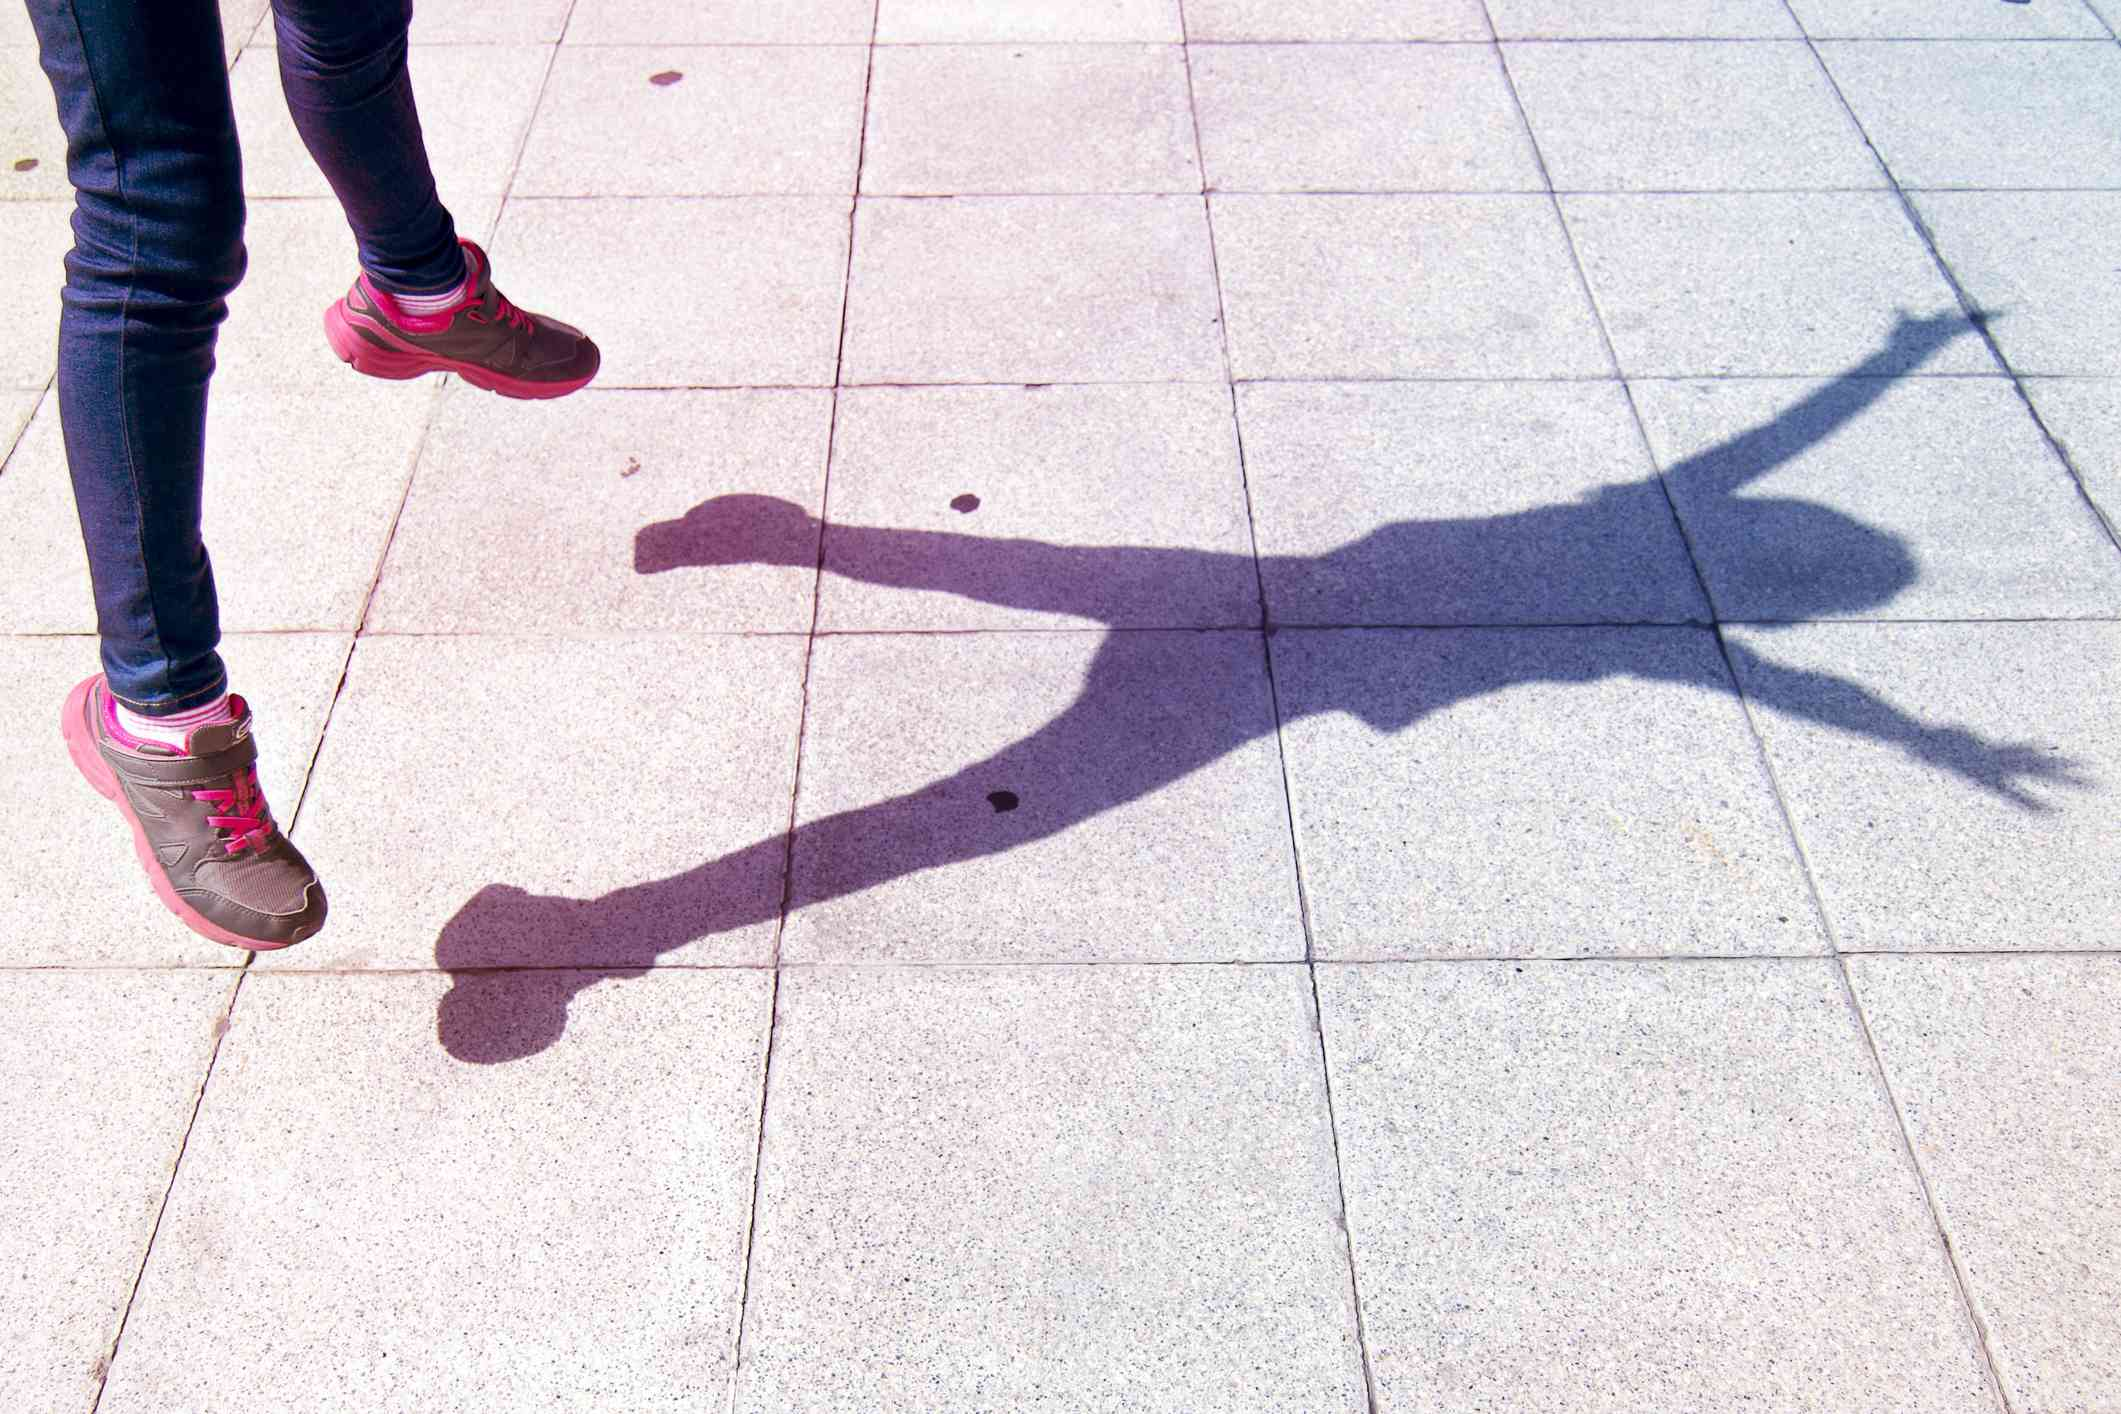 Shadow of a child doing a jumping jack